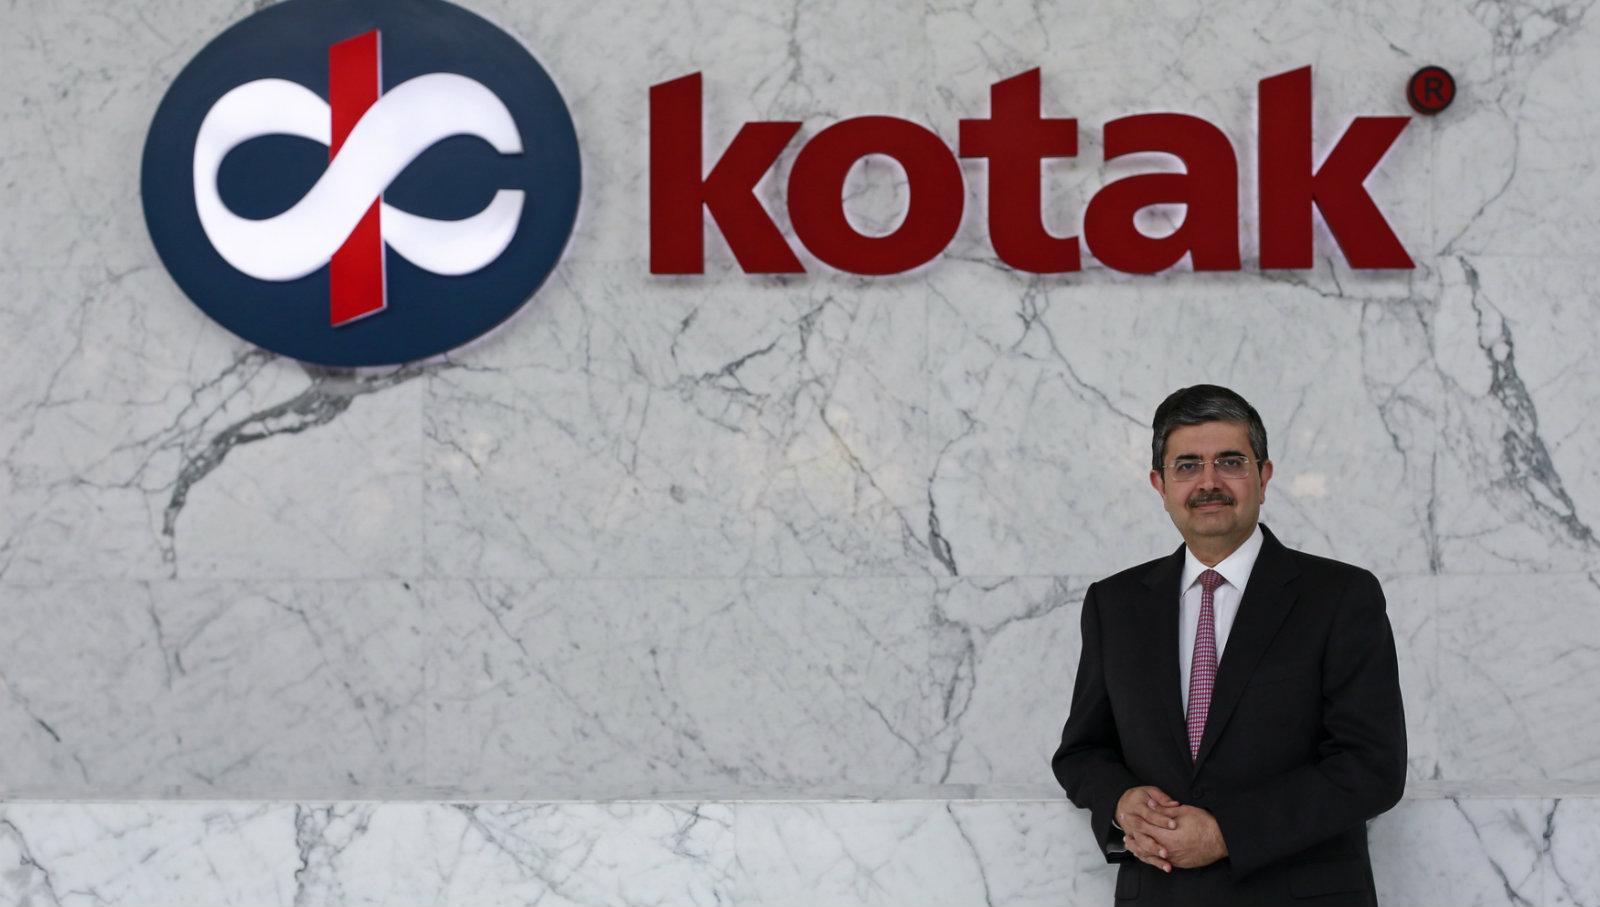 Uday Kotak, Managing Director of Kotak Mahindra Bank poses for a picture at the company's corporate office in Mumbai January 15, 2015.